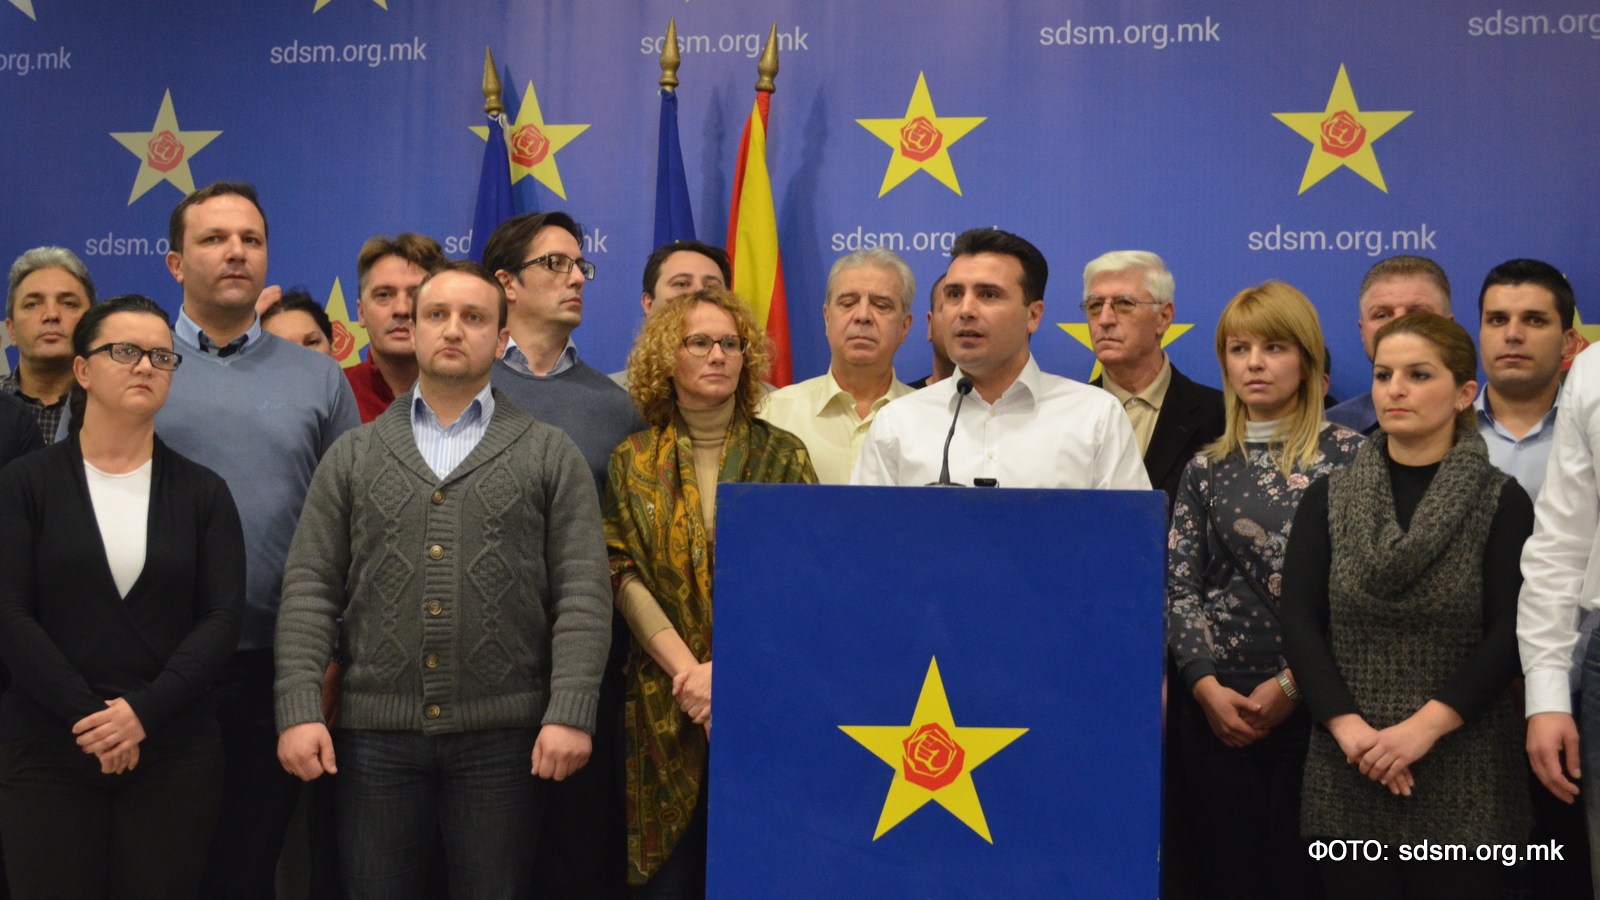 SDSM waiting for Zaev to return from vacation and decide